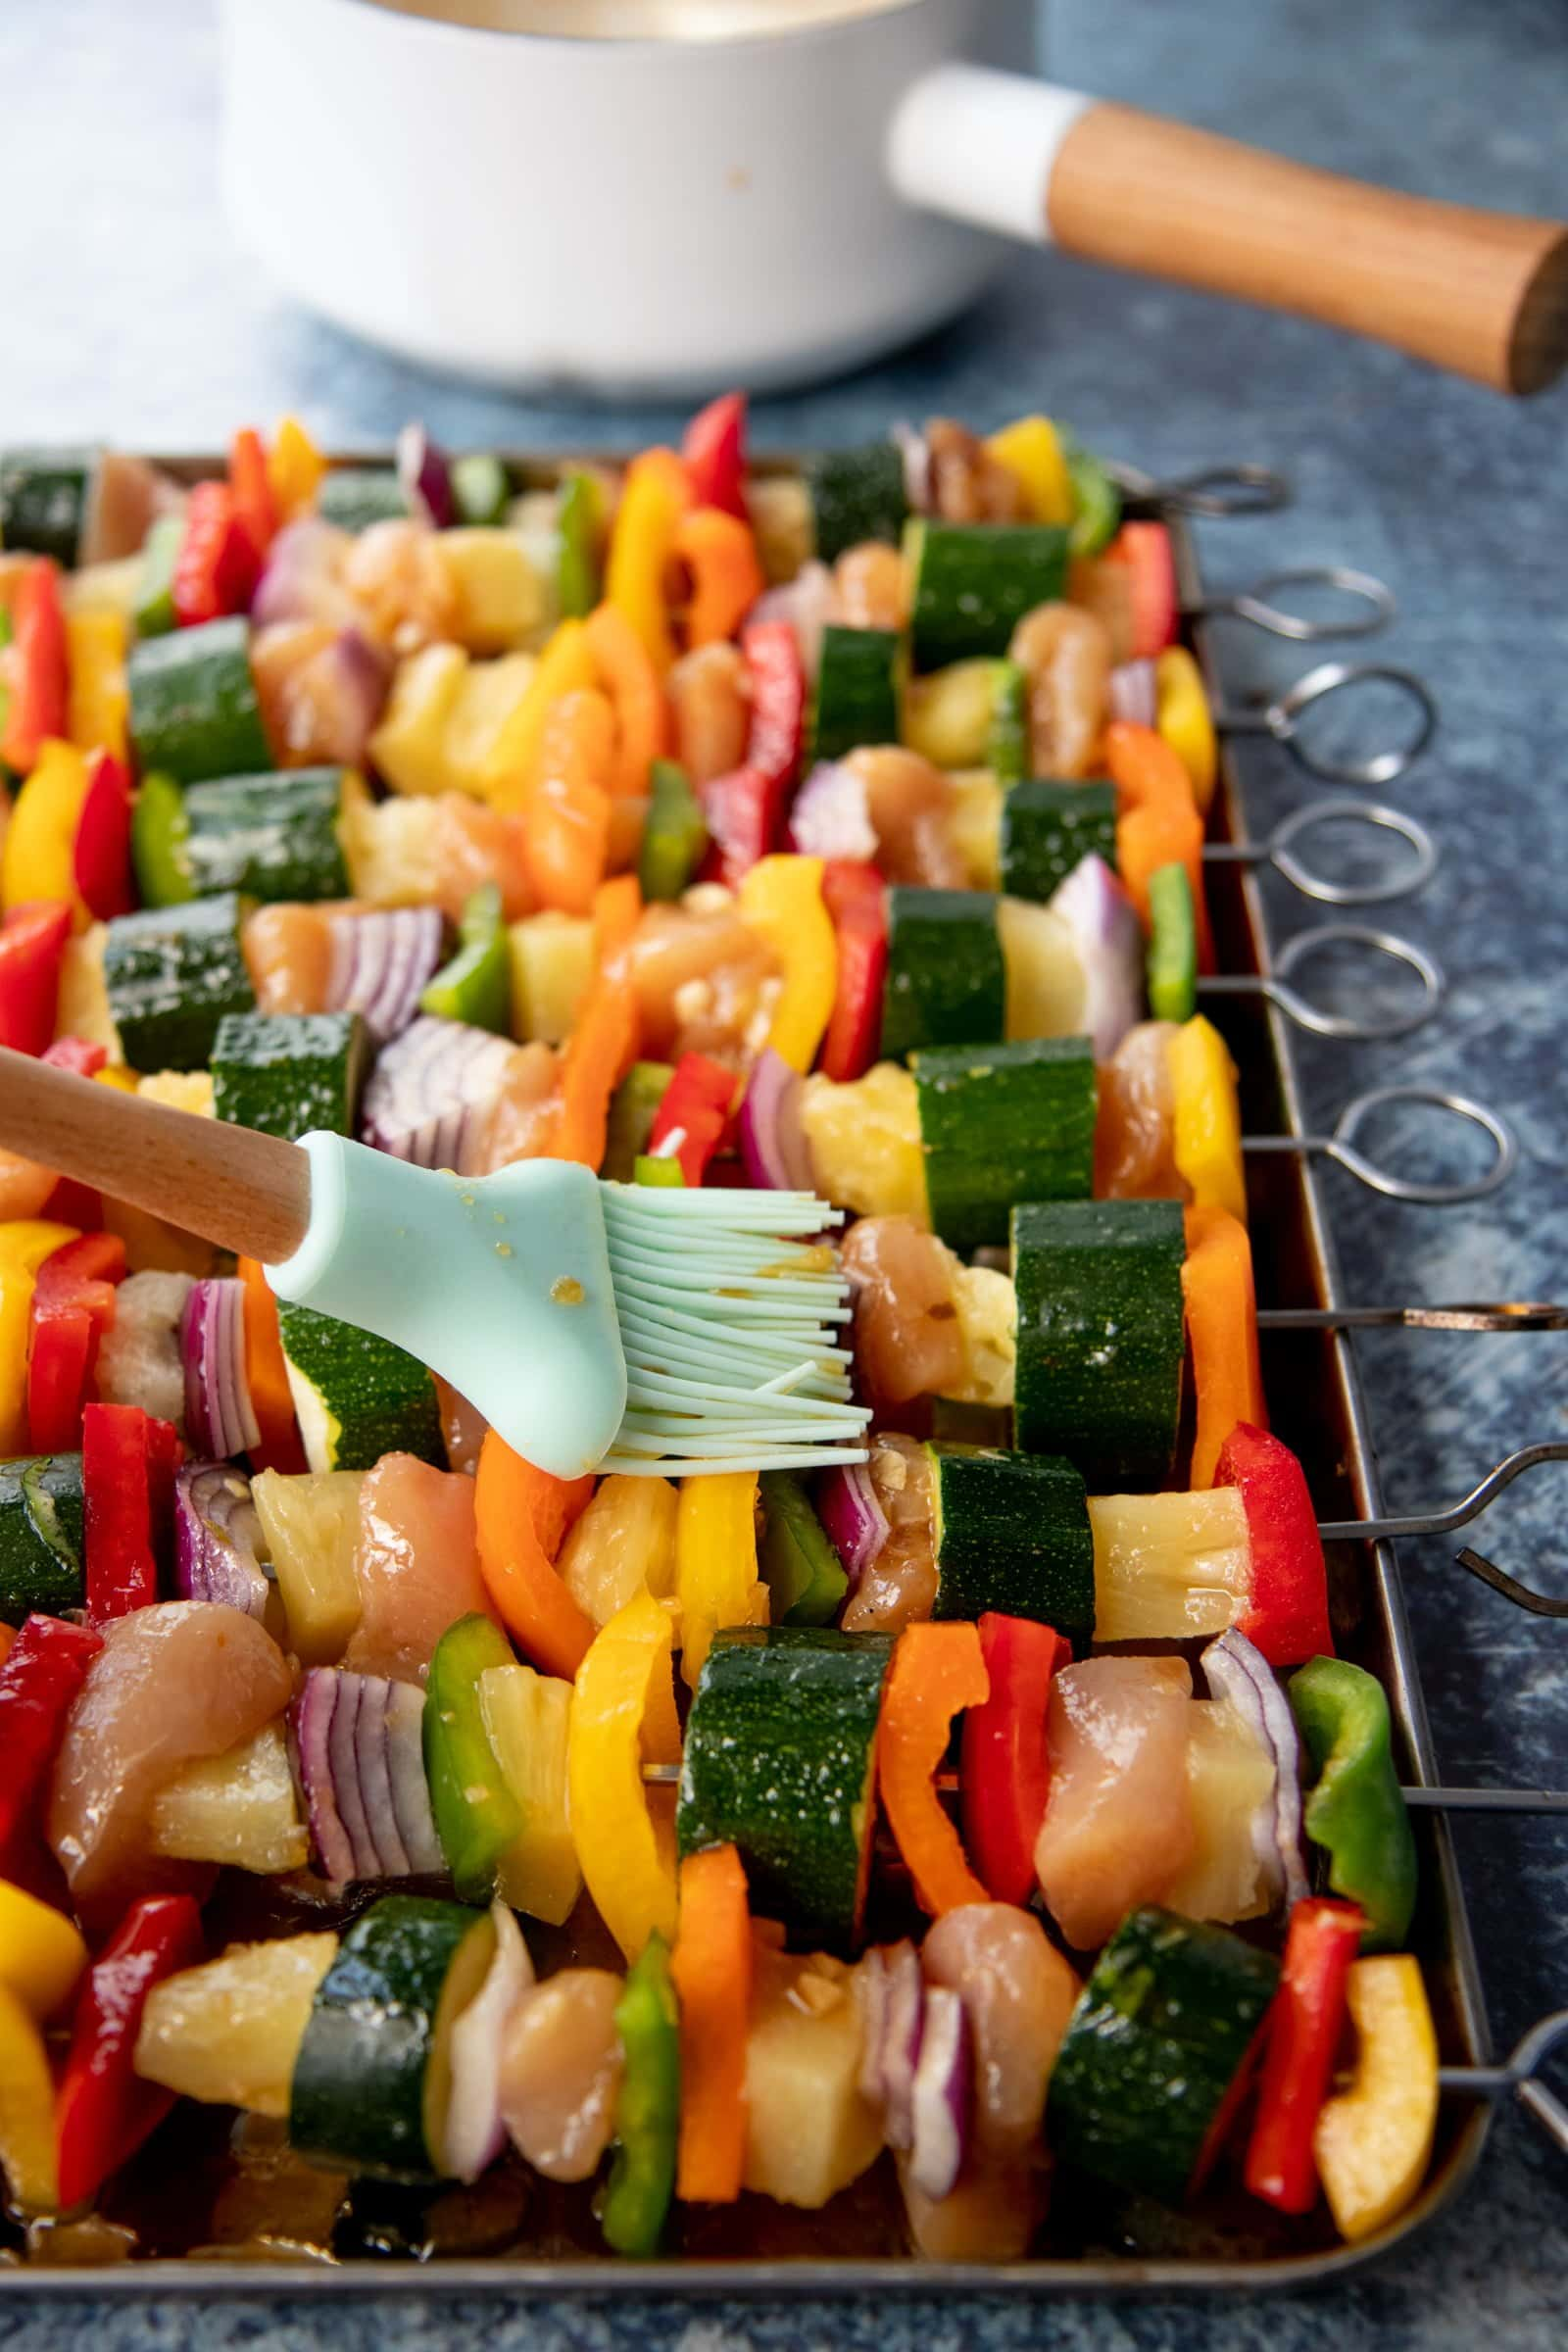 Pastry brush brushing marinade onto a tray of metal skewers threaded with chicken, vegetables, and pineapple to make Grilled Chicken Kabobs